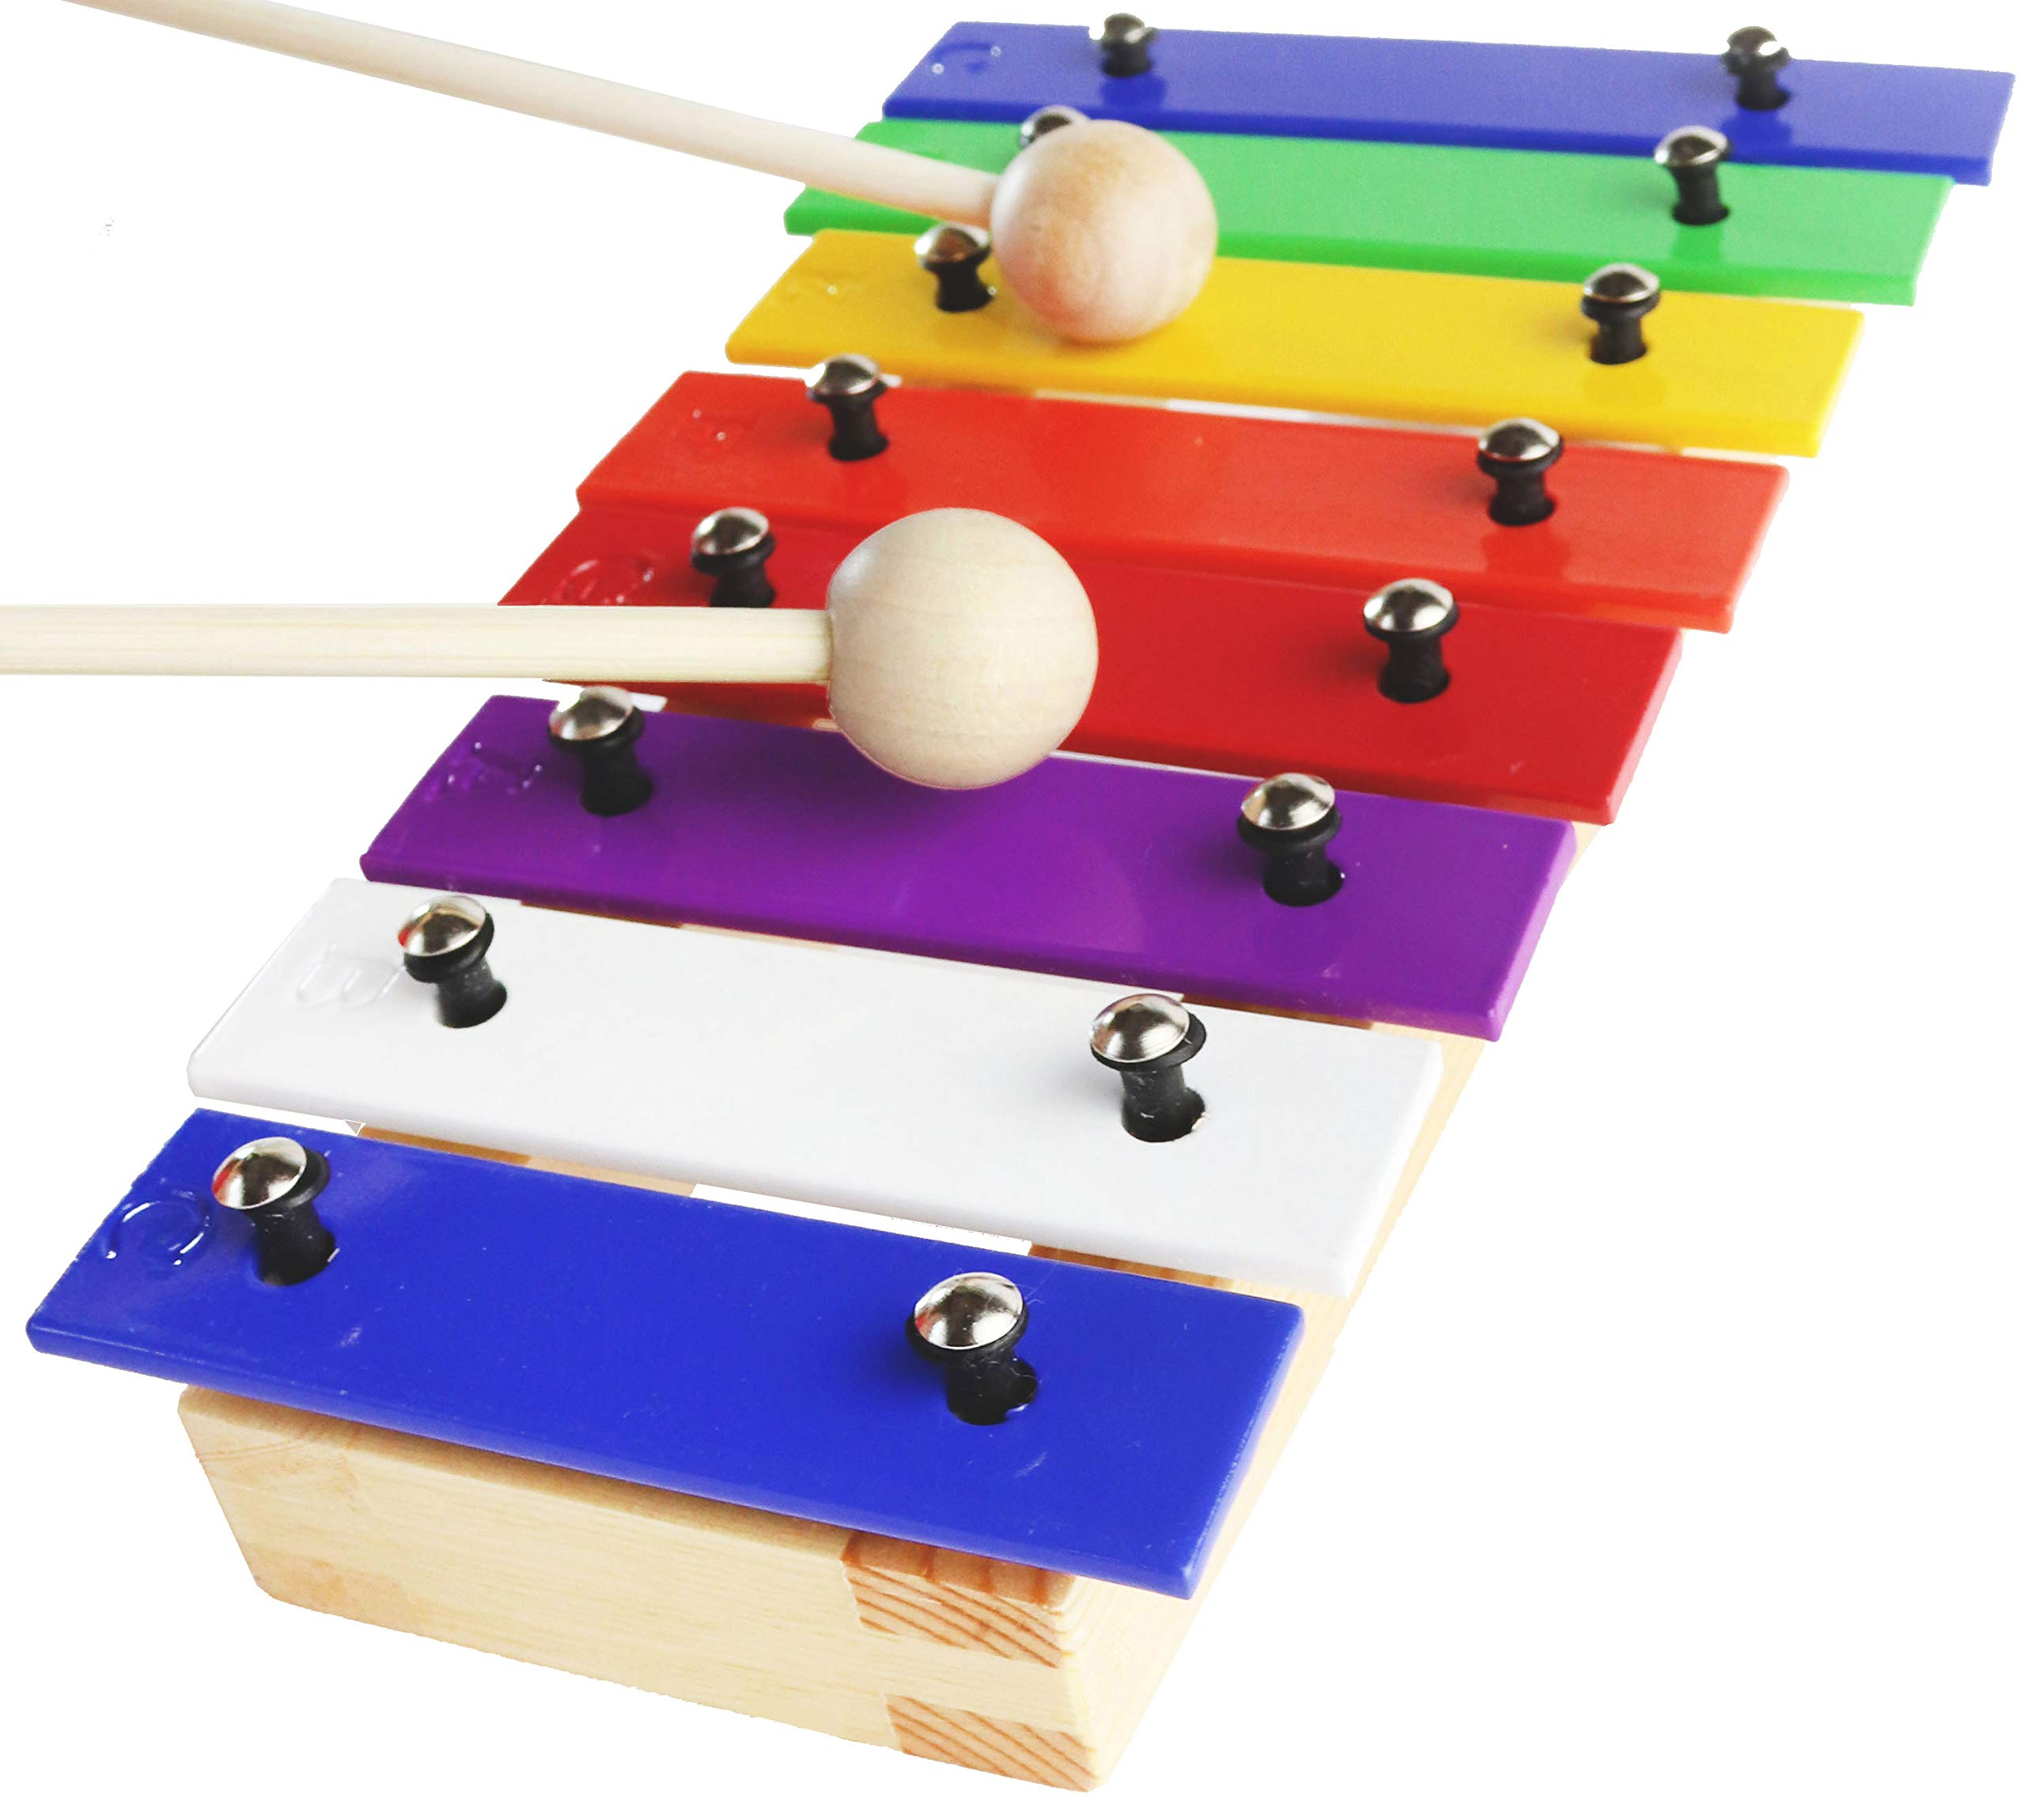 Mini Xylophone Glockenspiel - e-Book Color-Coded Songs just for this Toy Xylophone for Kids